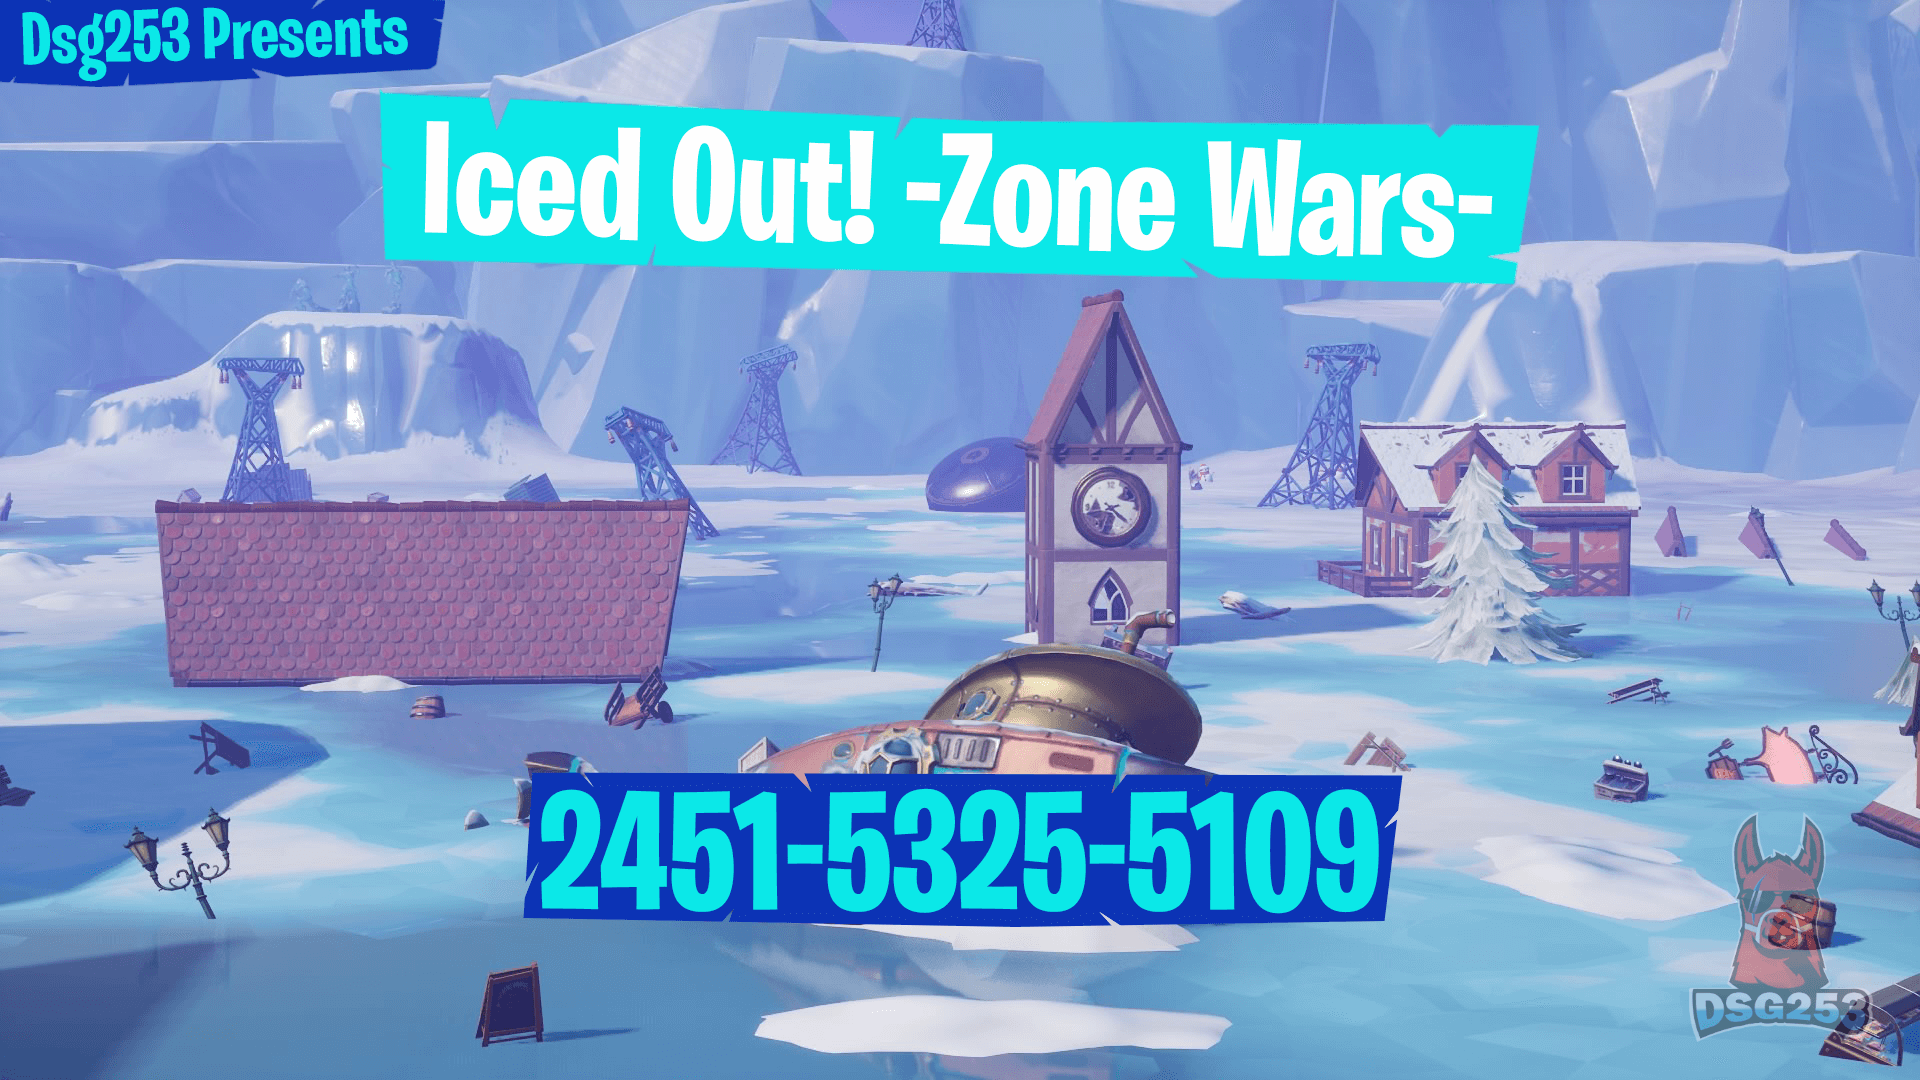 ICED OUT! -ZONE WARS- BY DSG253